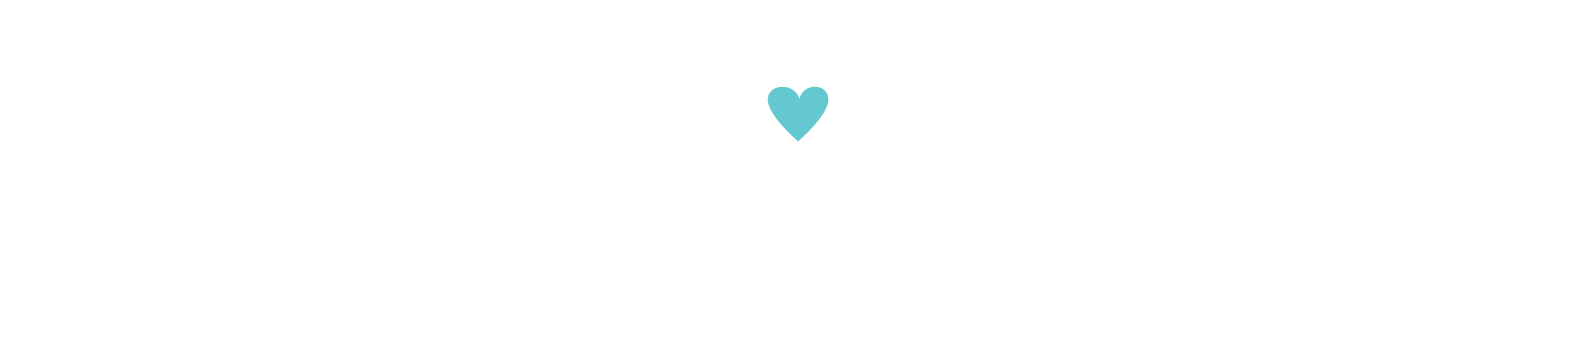 haracters linking hands with the central character showing good mental health